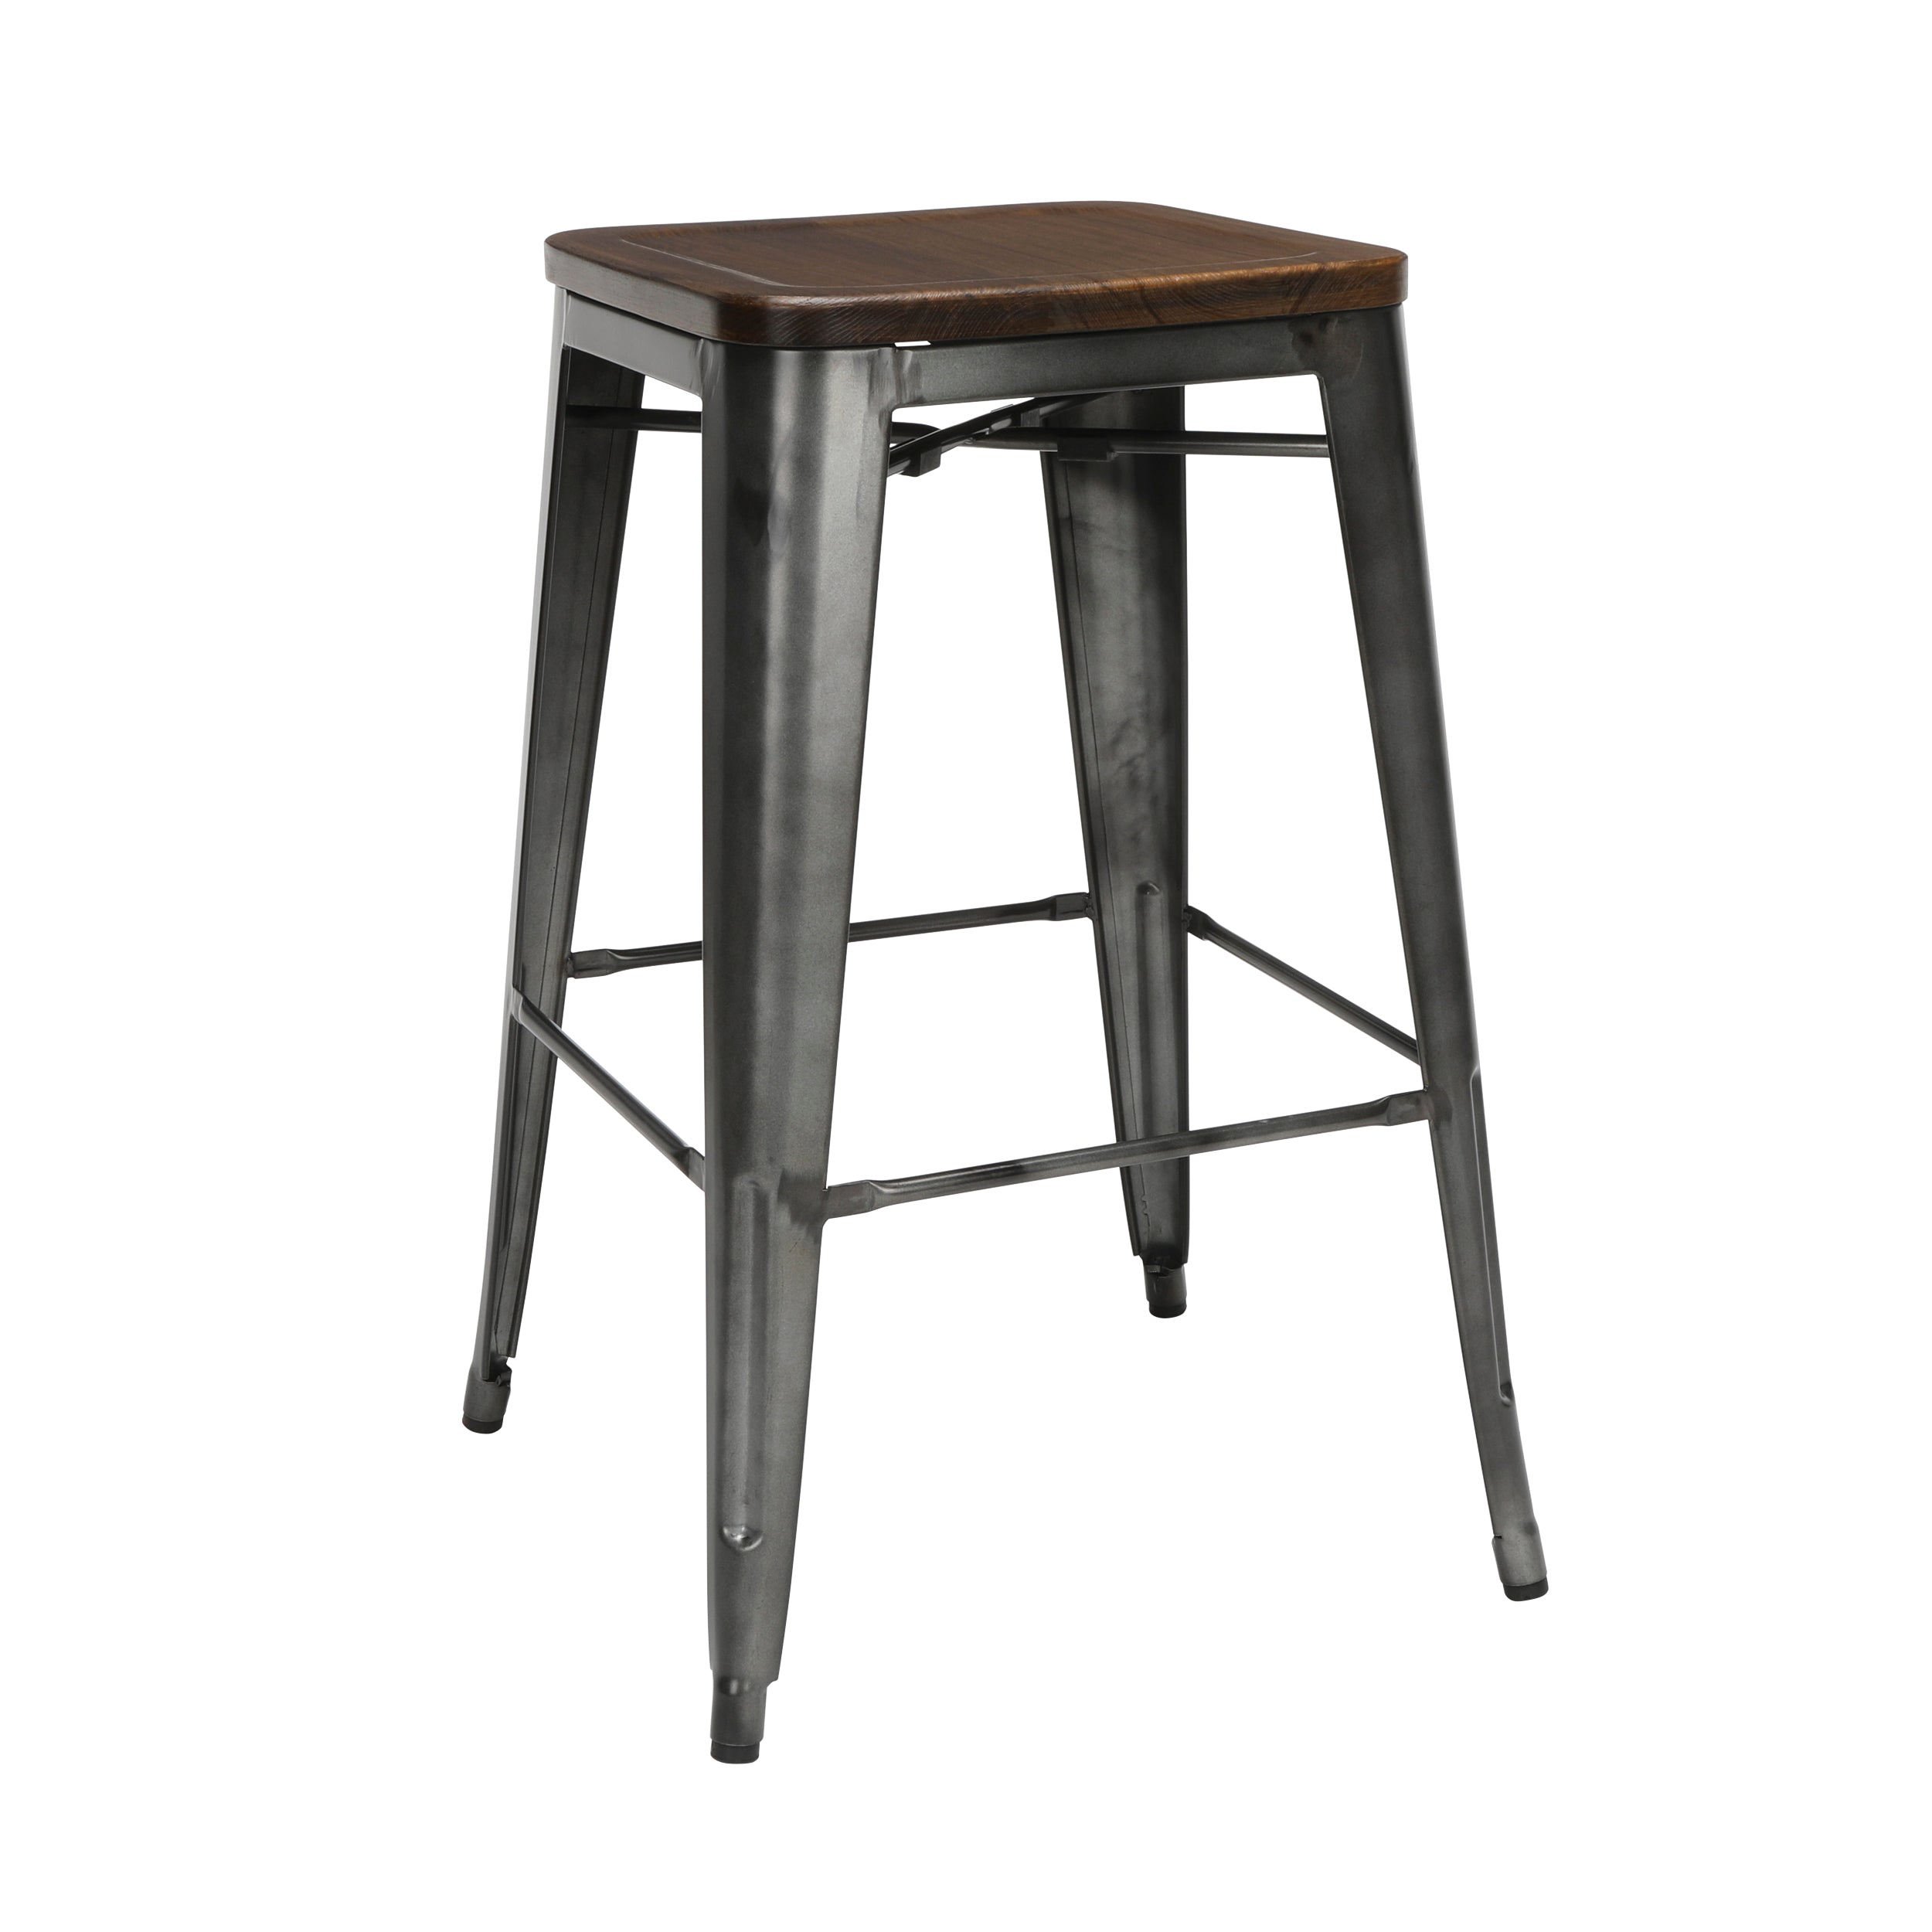 "4 Pack 30"" Backless Bar Height Metal Stools"